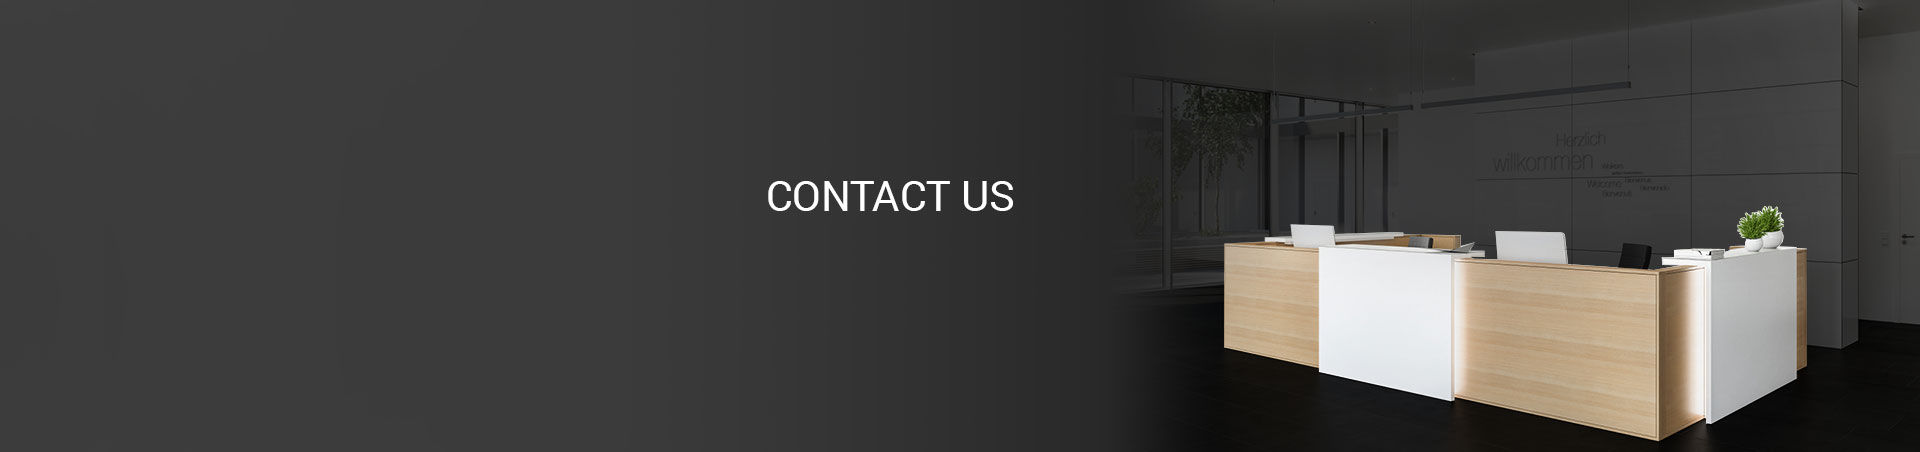 Contact Us - Furnify